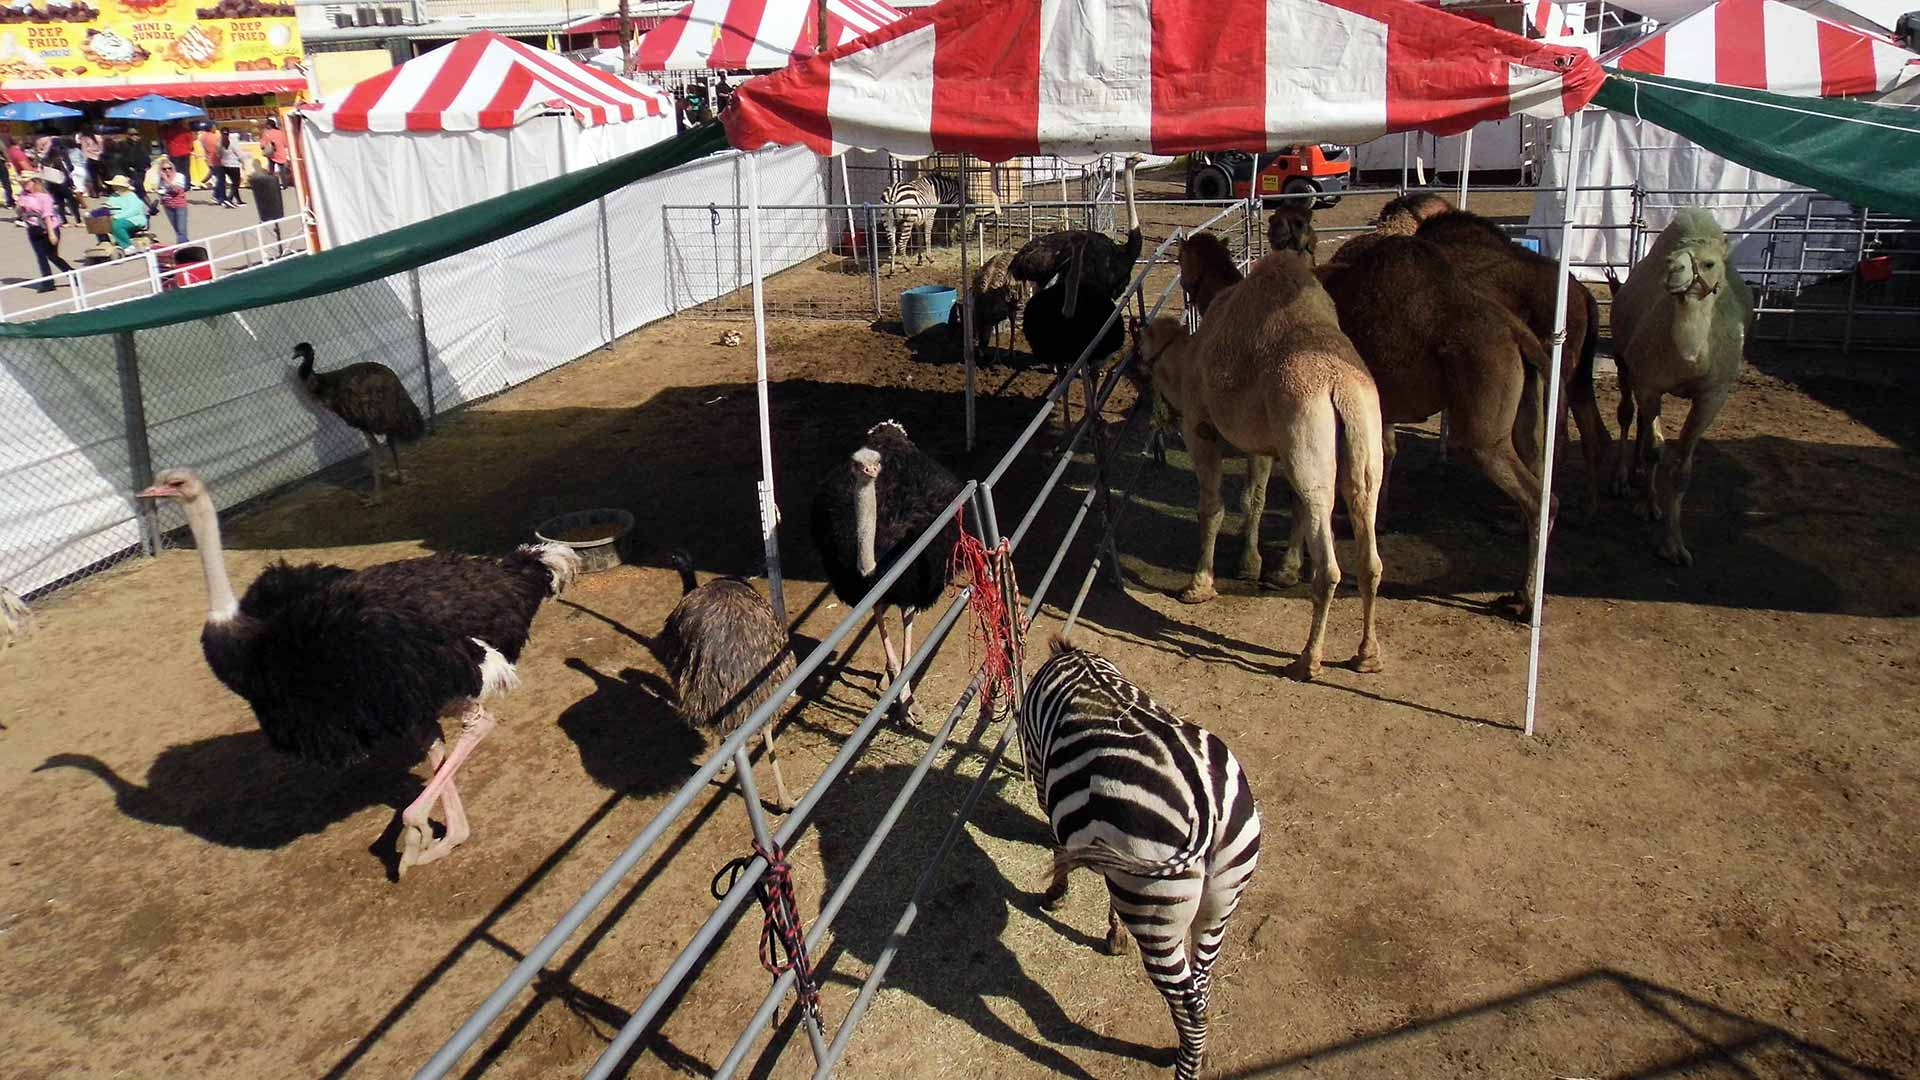 Ostriches, Zebras, Camels at the Riverside County Fair